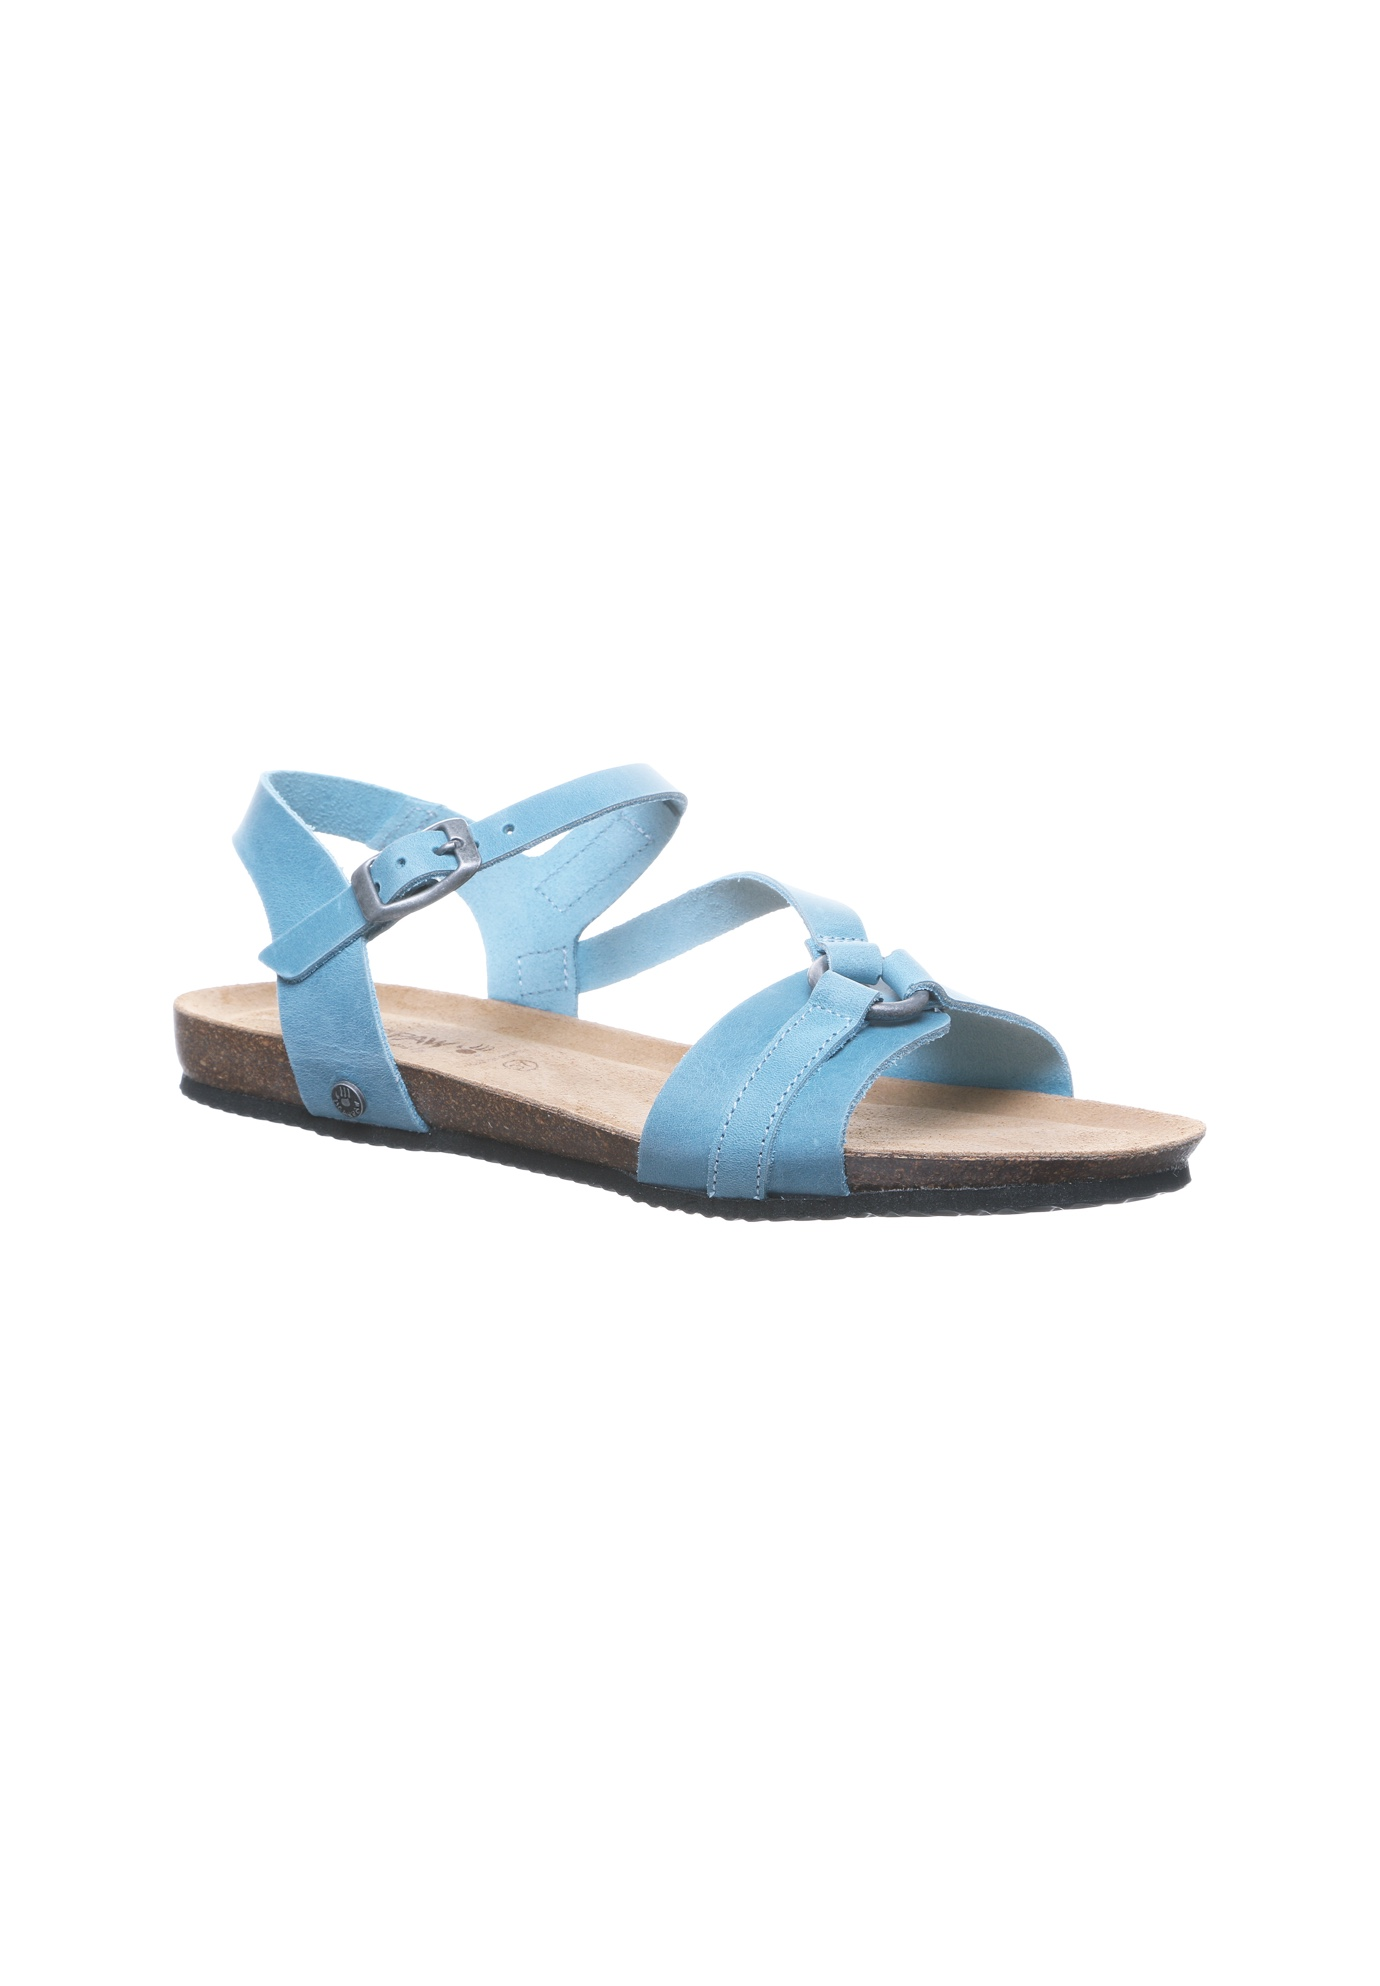 Sandy Sandals by Bearpaw,